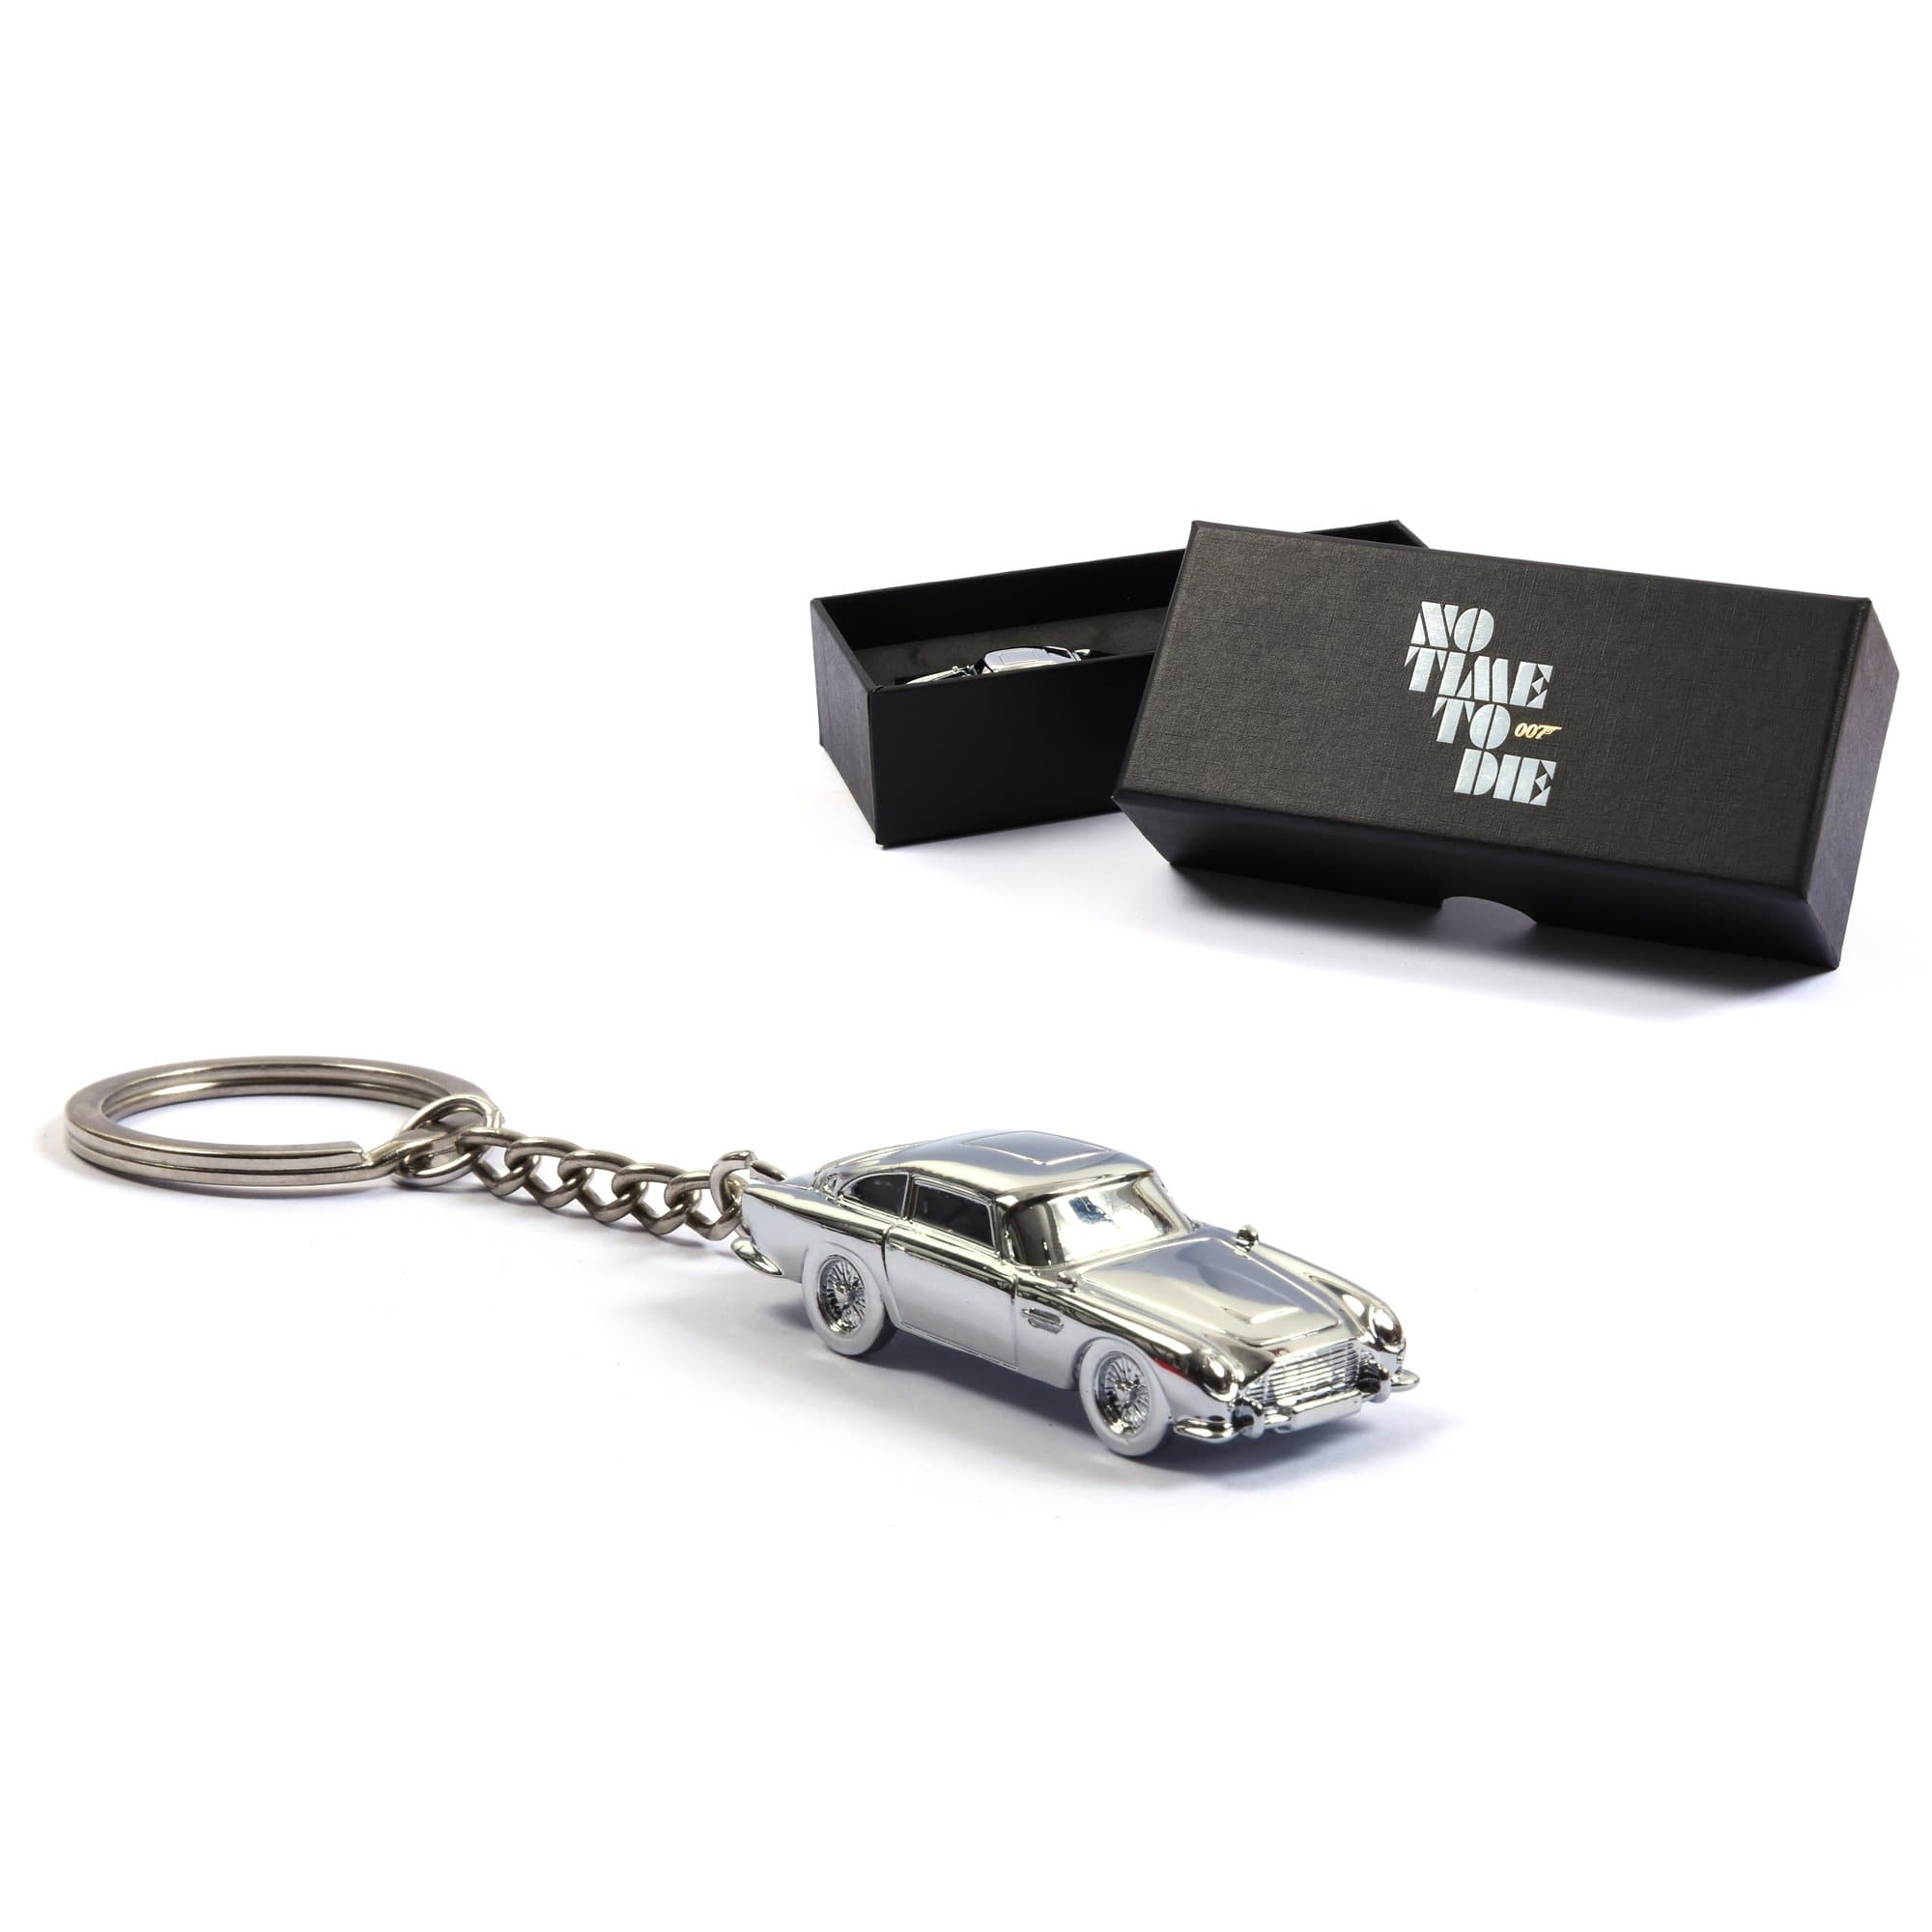 Aston Martin DB5 James Bond Keyring  - No Time To Die Edition - 007STORE